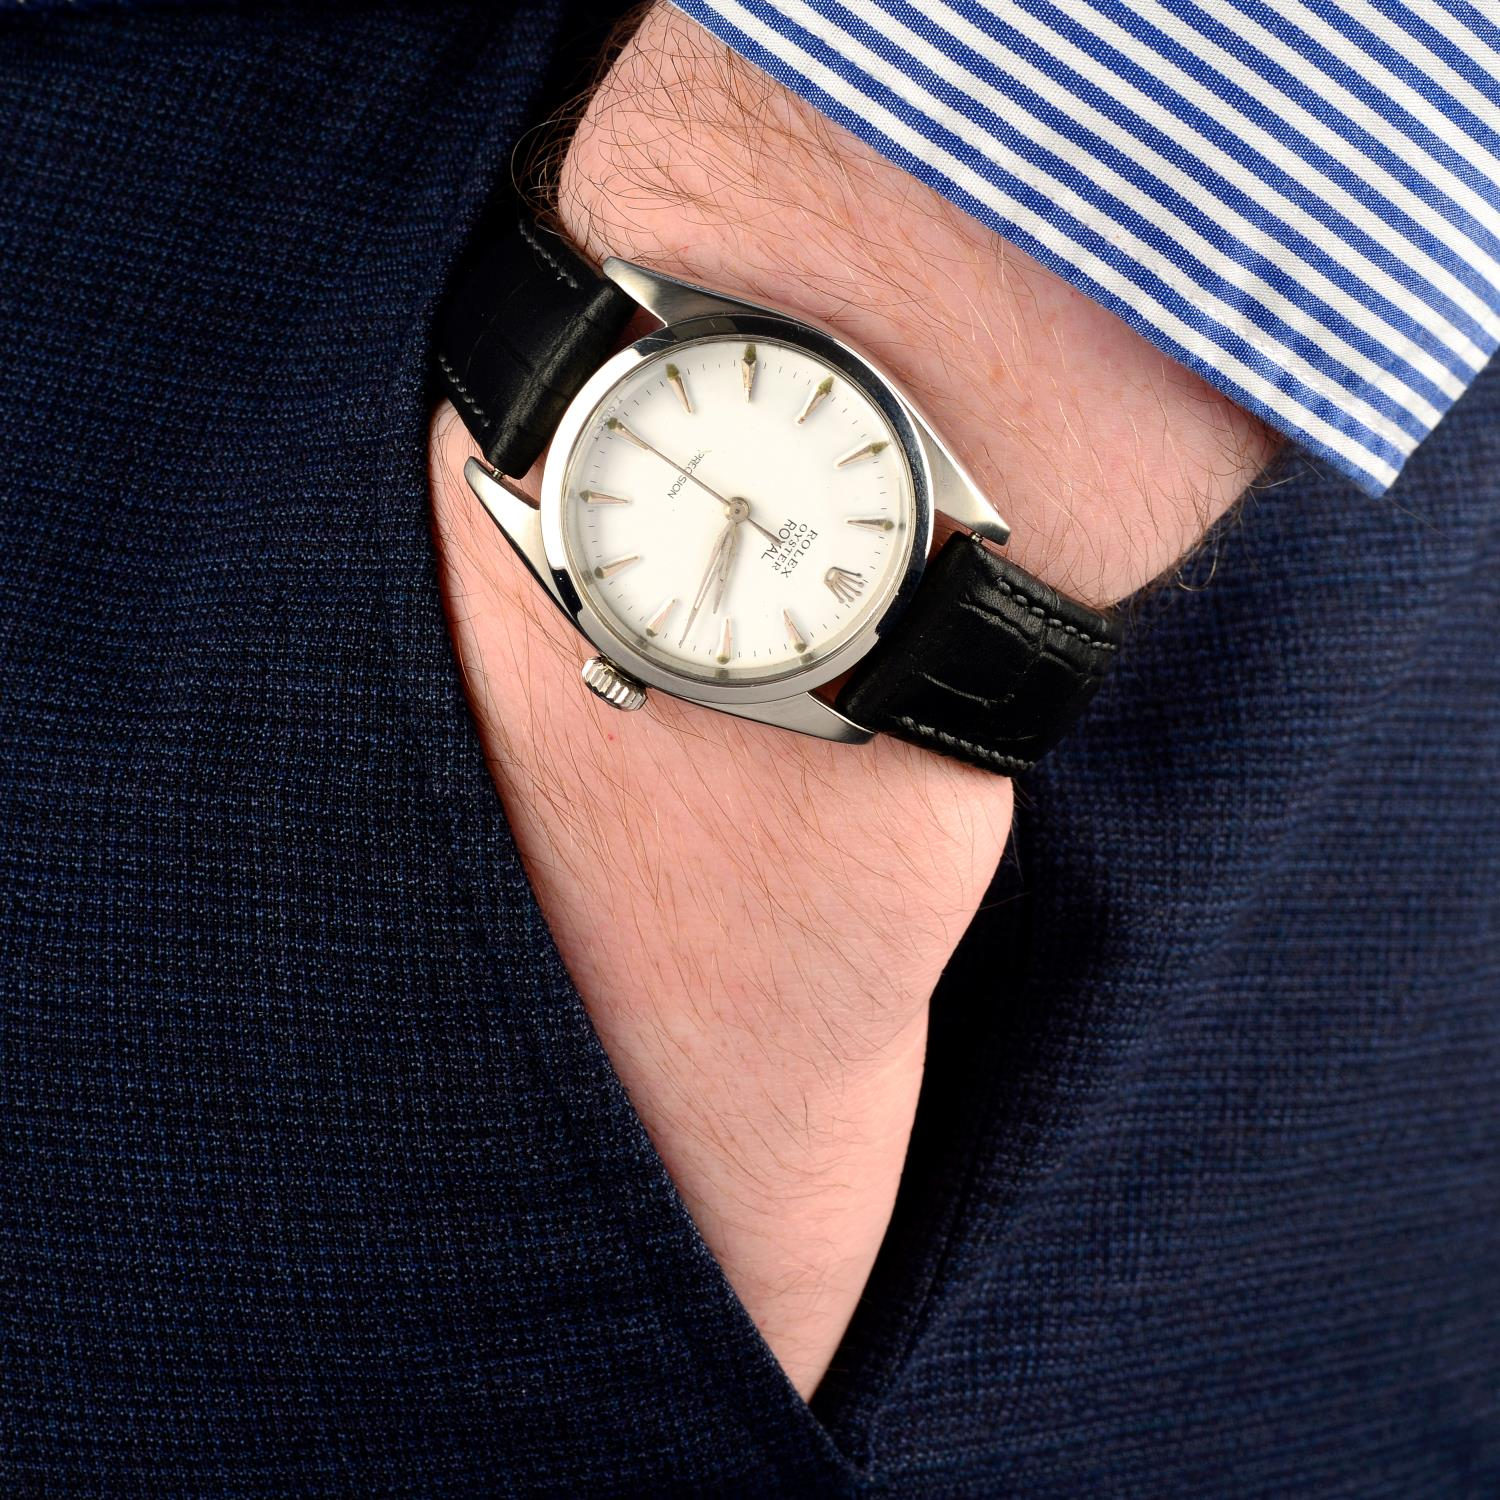 ROLEX - an Oyster Precision wrist watch. - Image 3 of 5